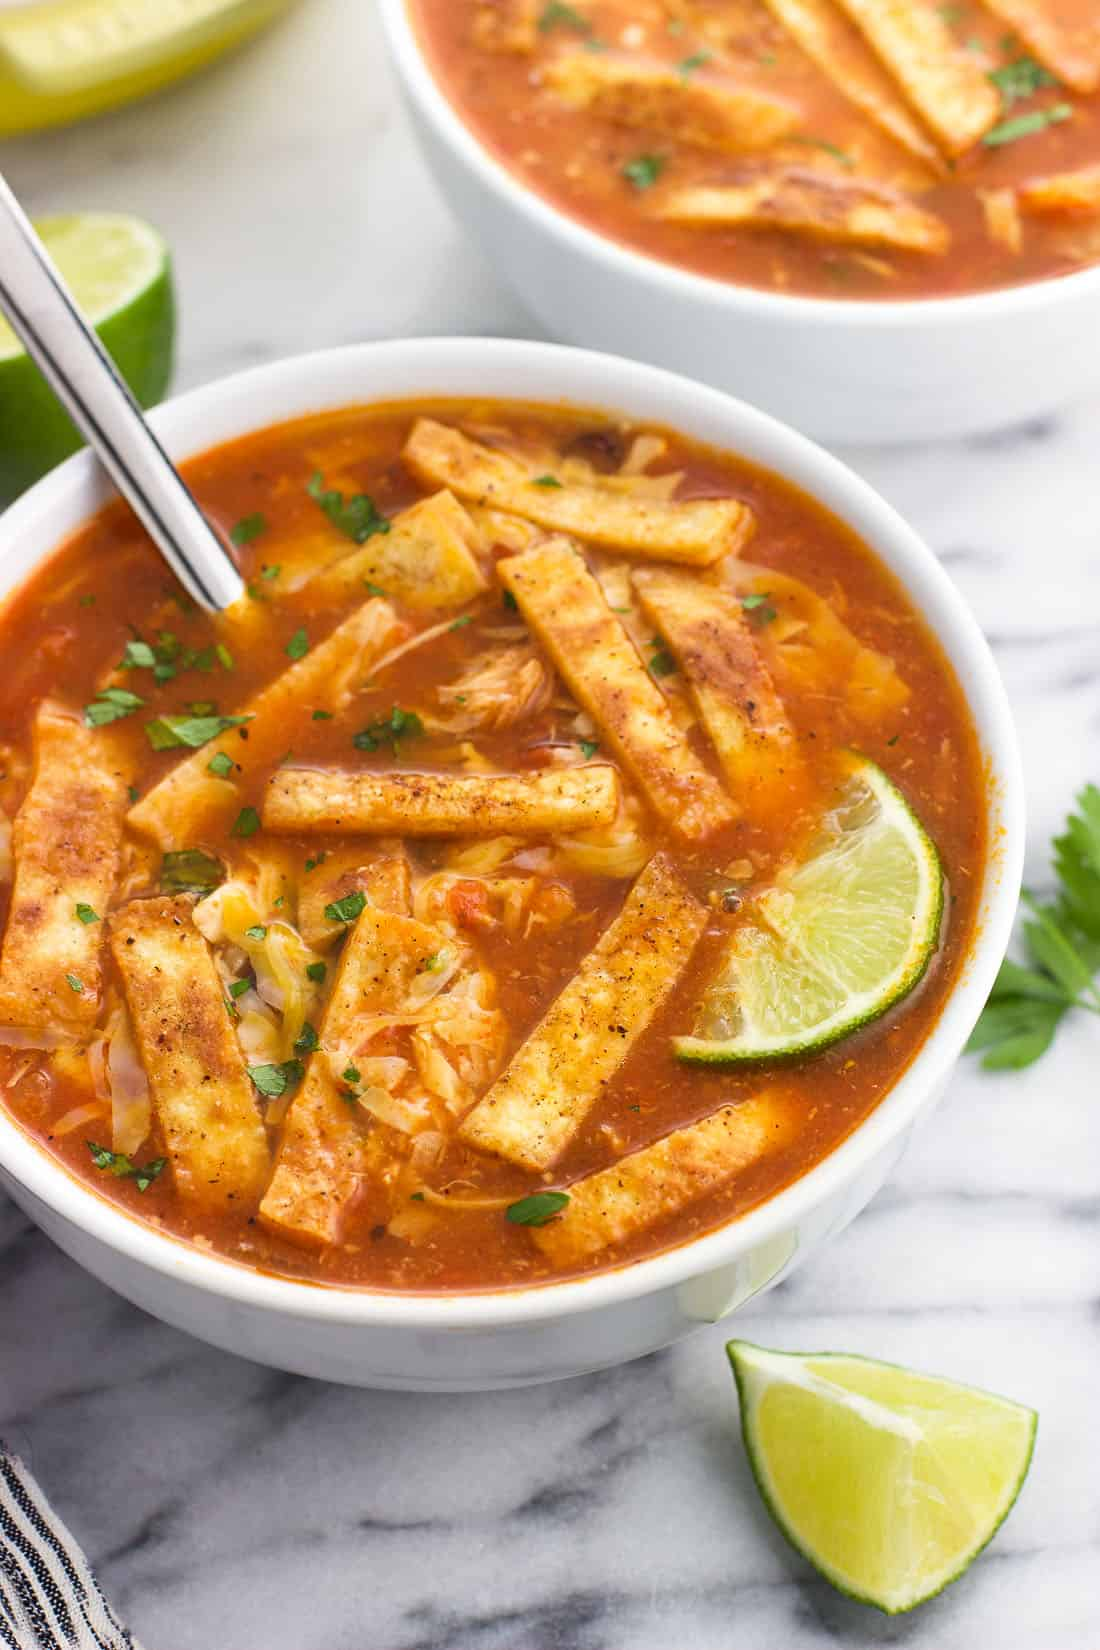 Easy chicken tortilla soup with rice is filled with bold southwestern flavors and on the table in forty minutes. Top this healthy soup recipe with tortilla strips, cheese, and a sprinkling of lime juice for a delicious main dish recipe.